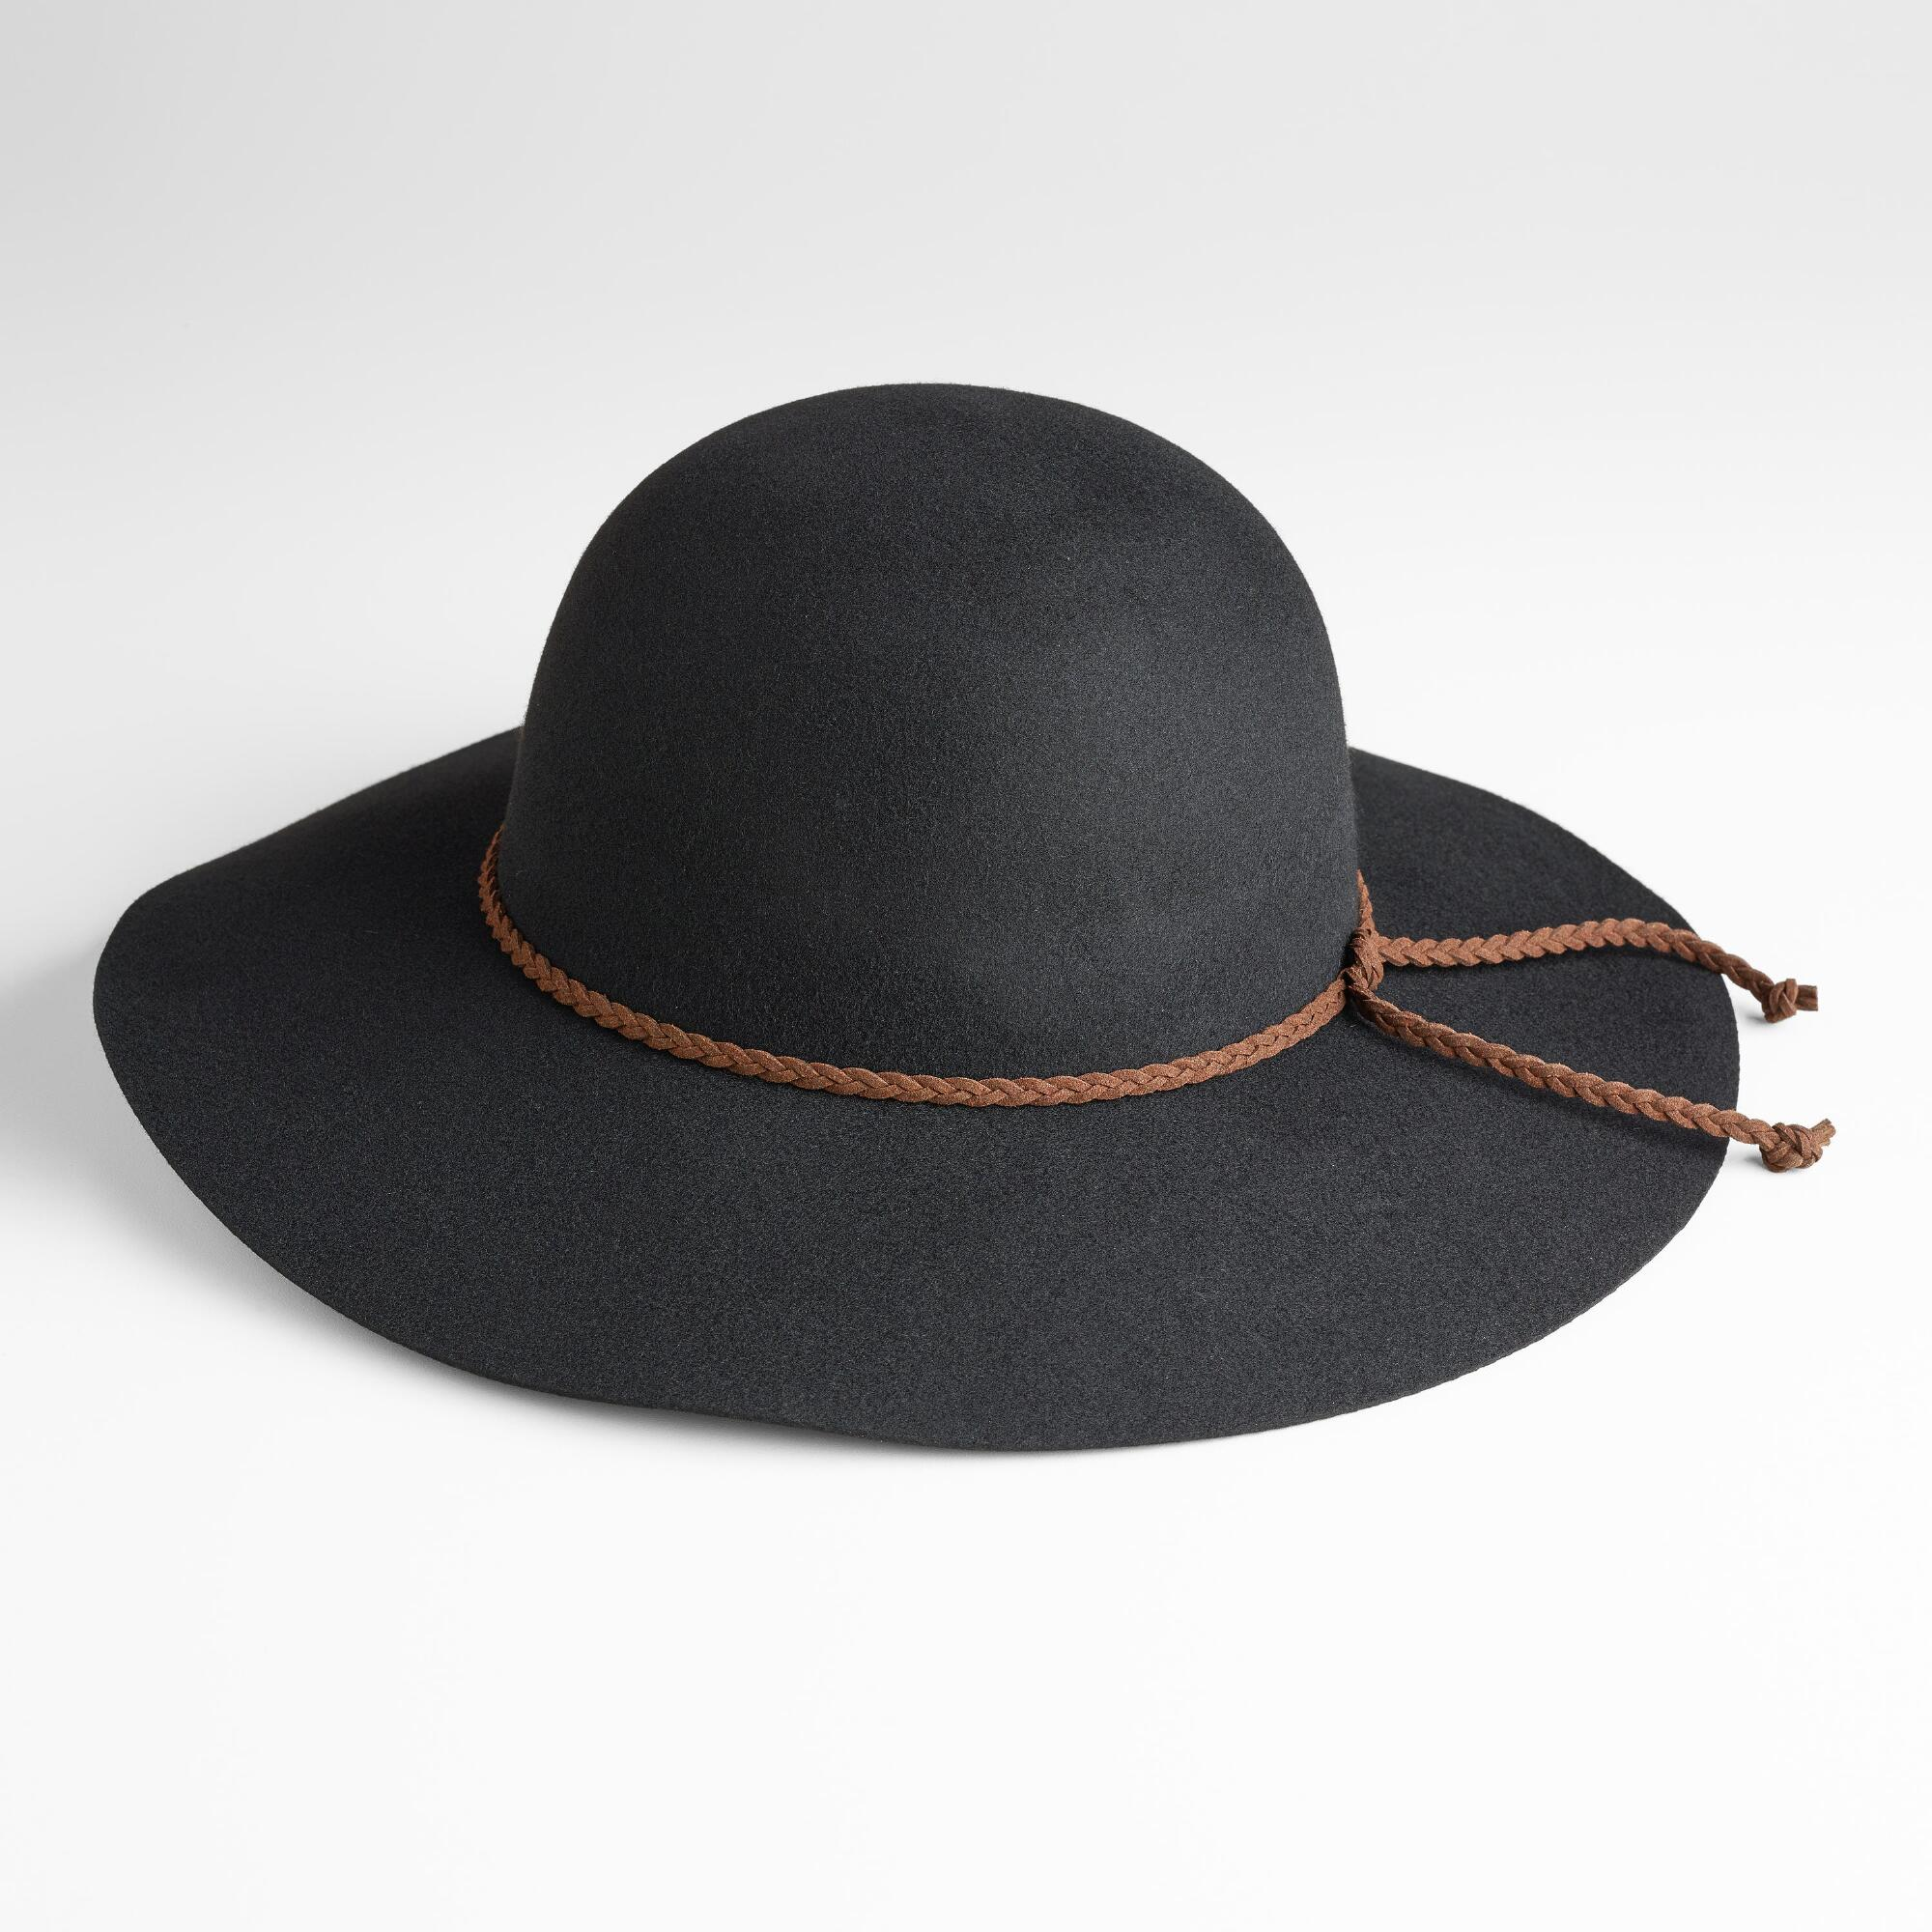 wilmergolding6jn1.gq: black floppy hats. From The Community. Amazon Try Prime All Wide brim floppy beach hat San Diego Hat Company Women's Floppy Sun Hat With Pinched Crown and Twisted Band. by San Diego Hat Company. $ - $ $ 32 $ 39 10 Prime. FREE Shipping on eligible orders.